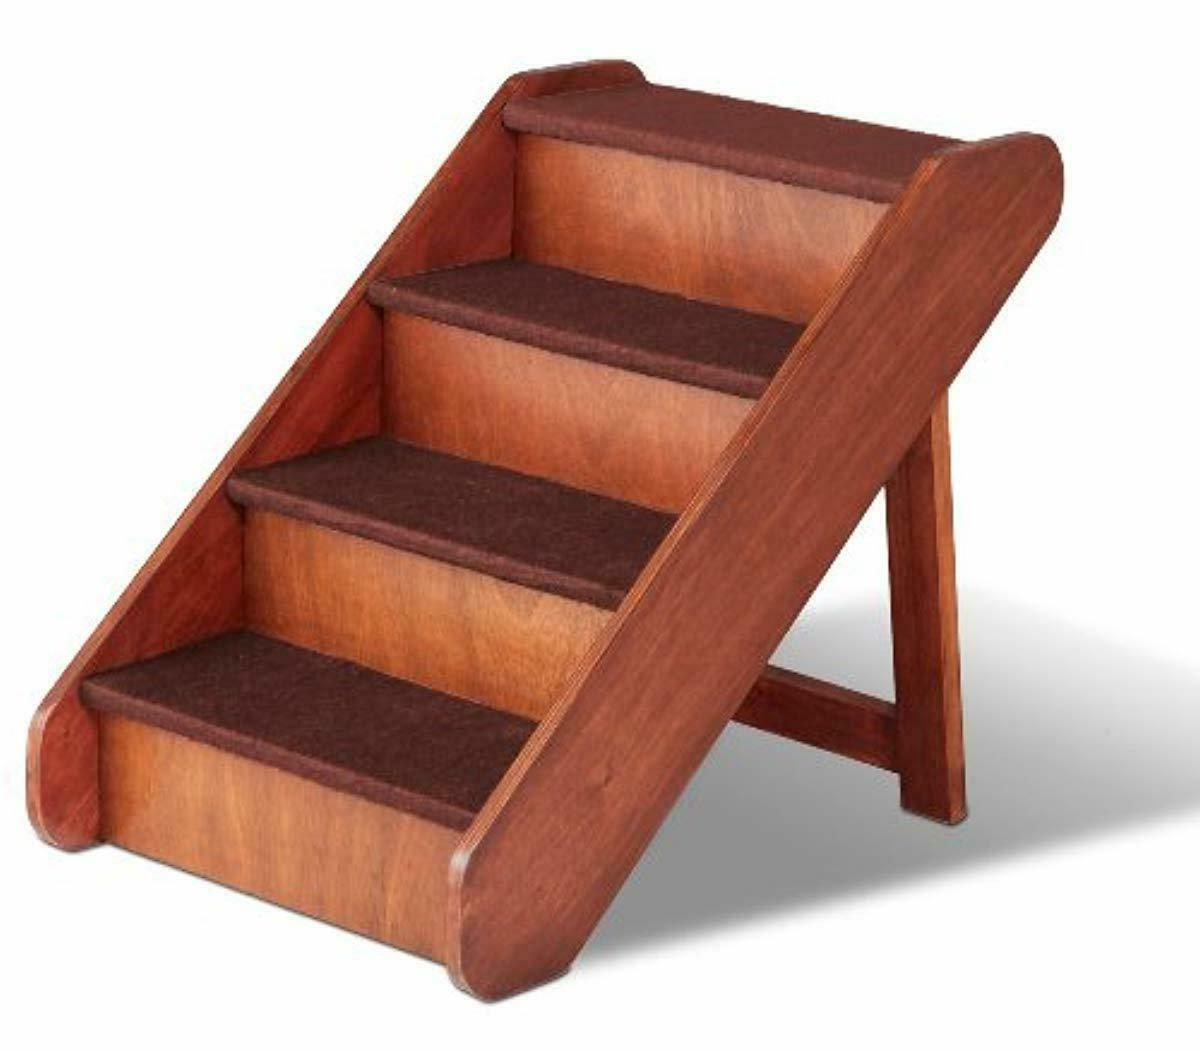 Doggy Stairs Medium Small or High Bed Get on Couch